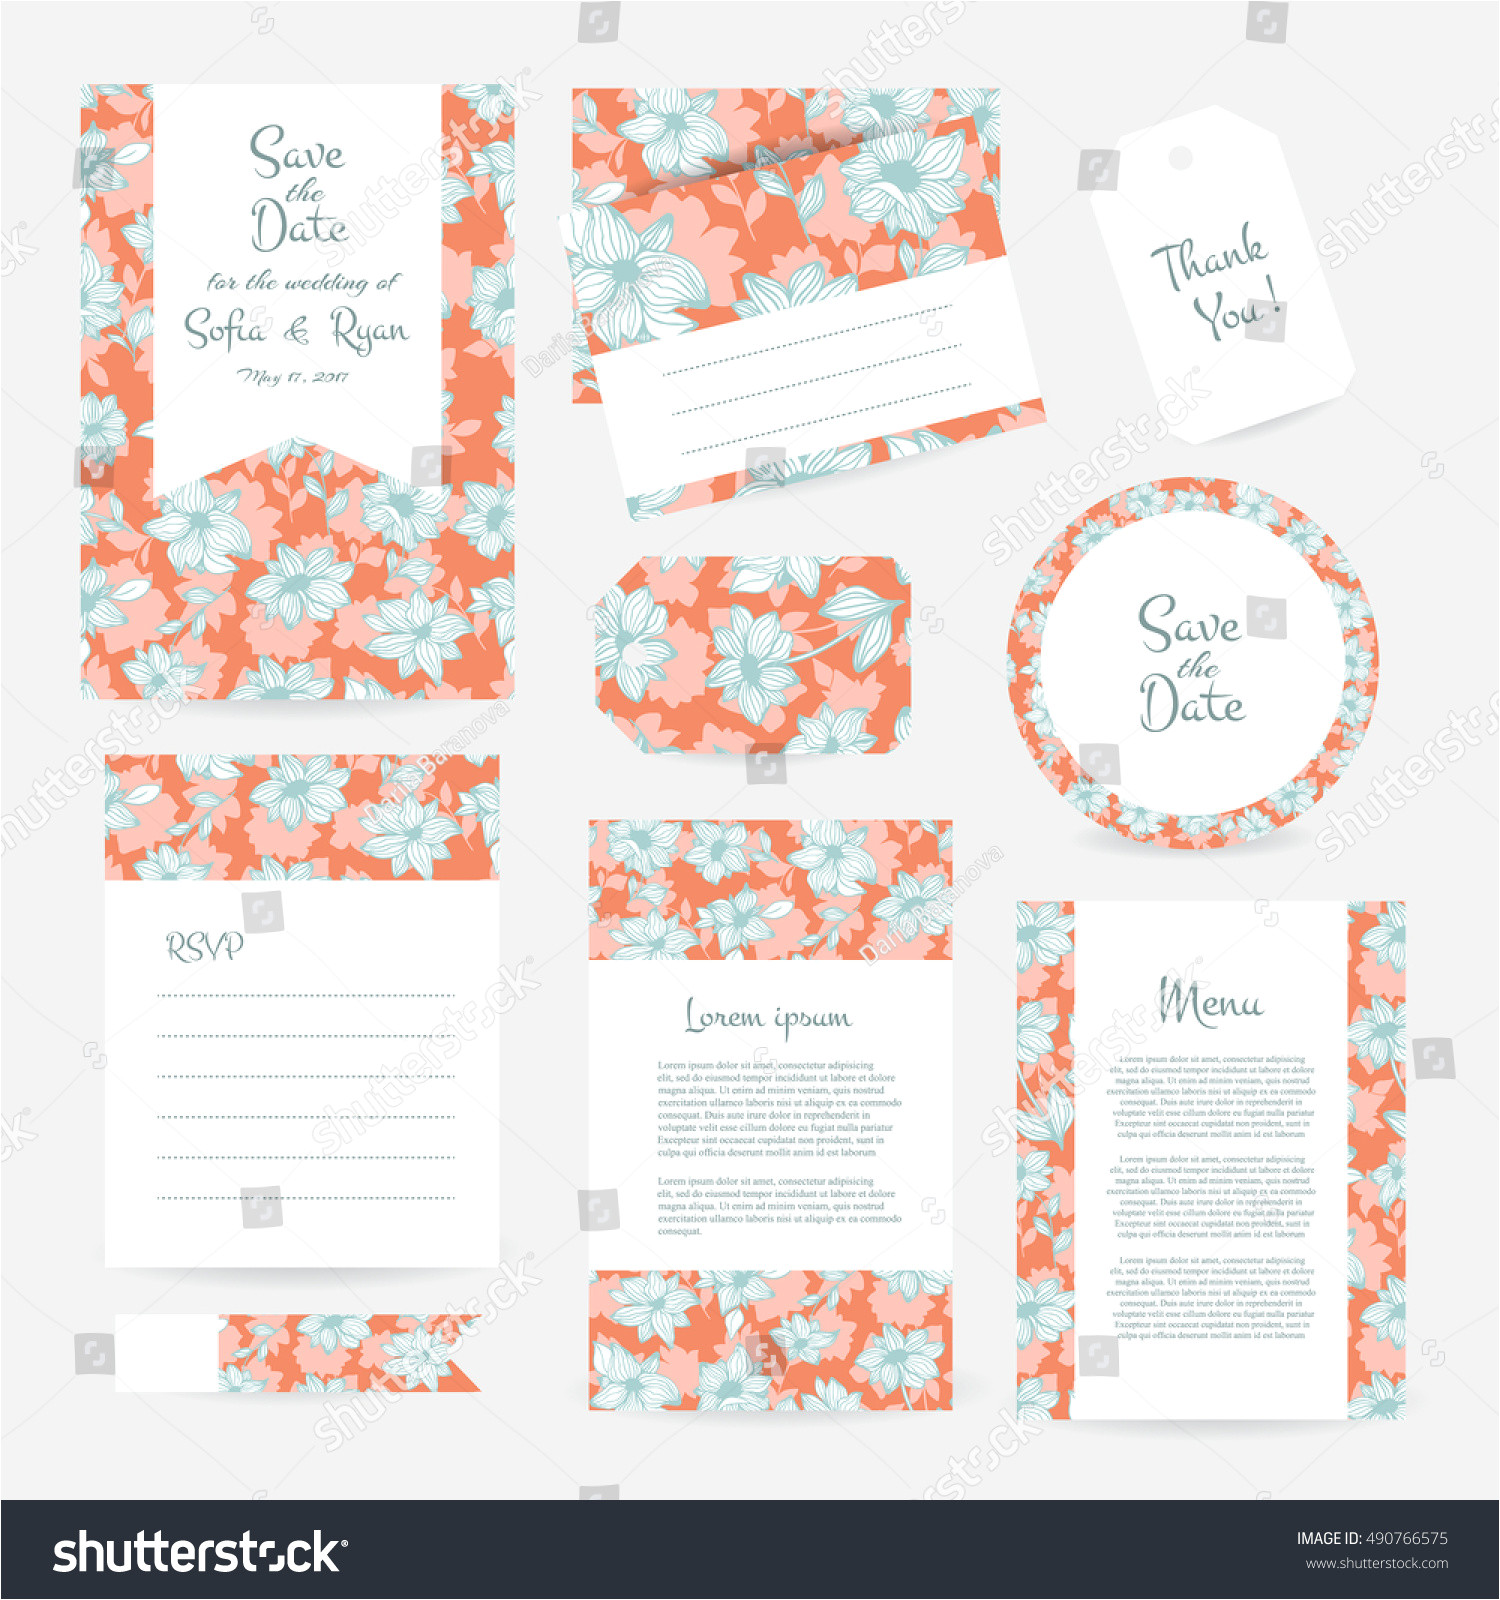 stock vector vector gentle wedding cards template with flower design wedding invitation or save the date rsvp 490766575 jpg